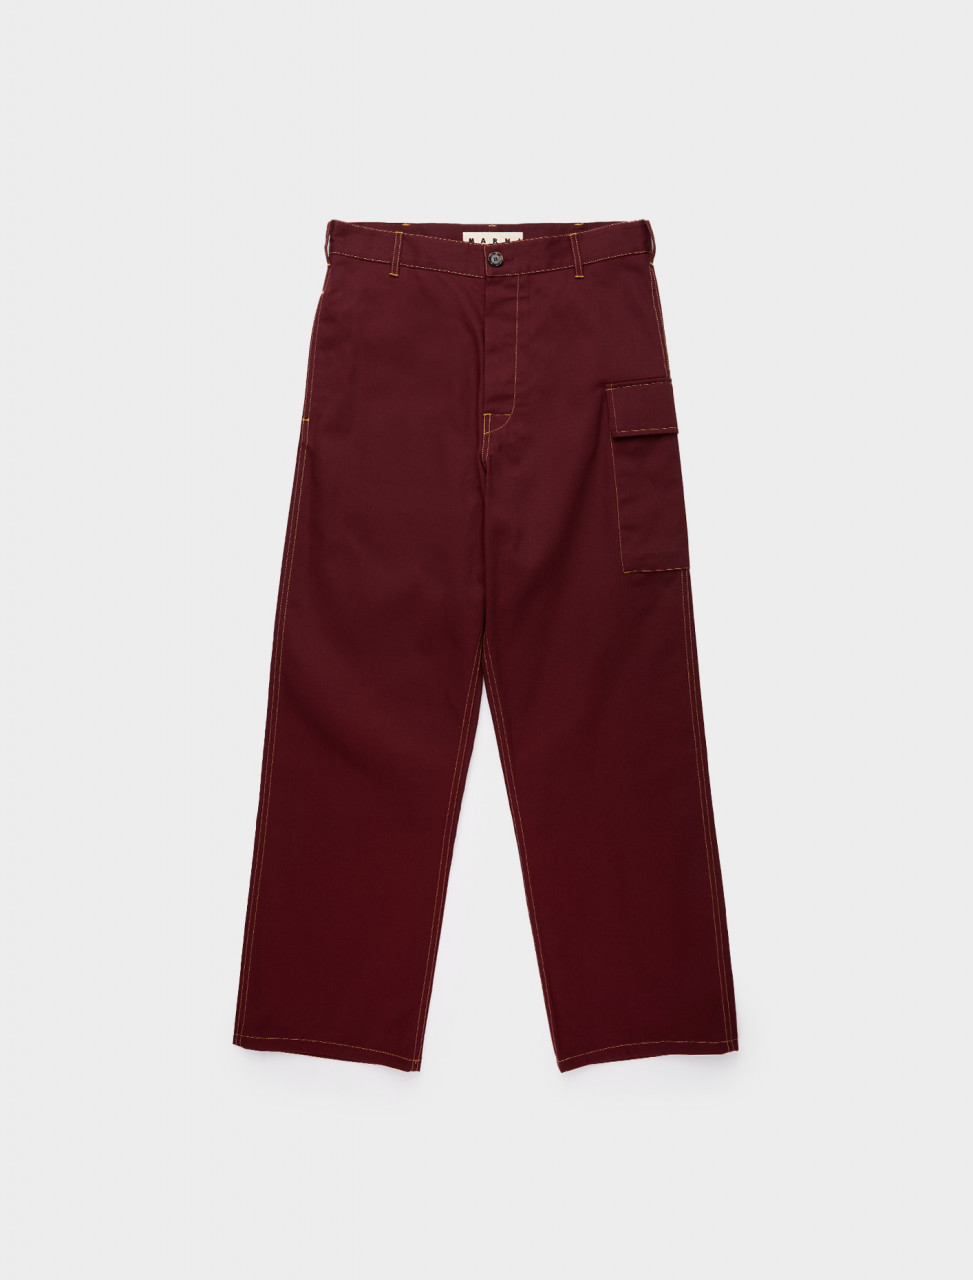 137-PUMU0095A0-S53292-00R82 MARNI CONTRAST STITCH POCKET TROUSER RUBY